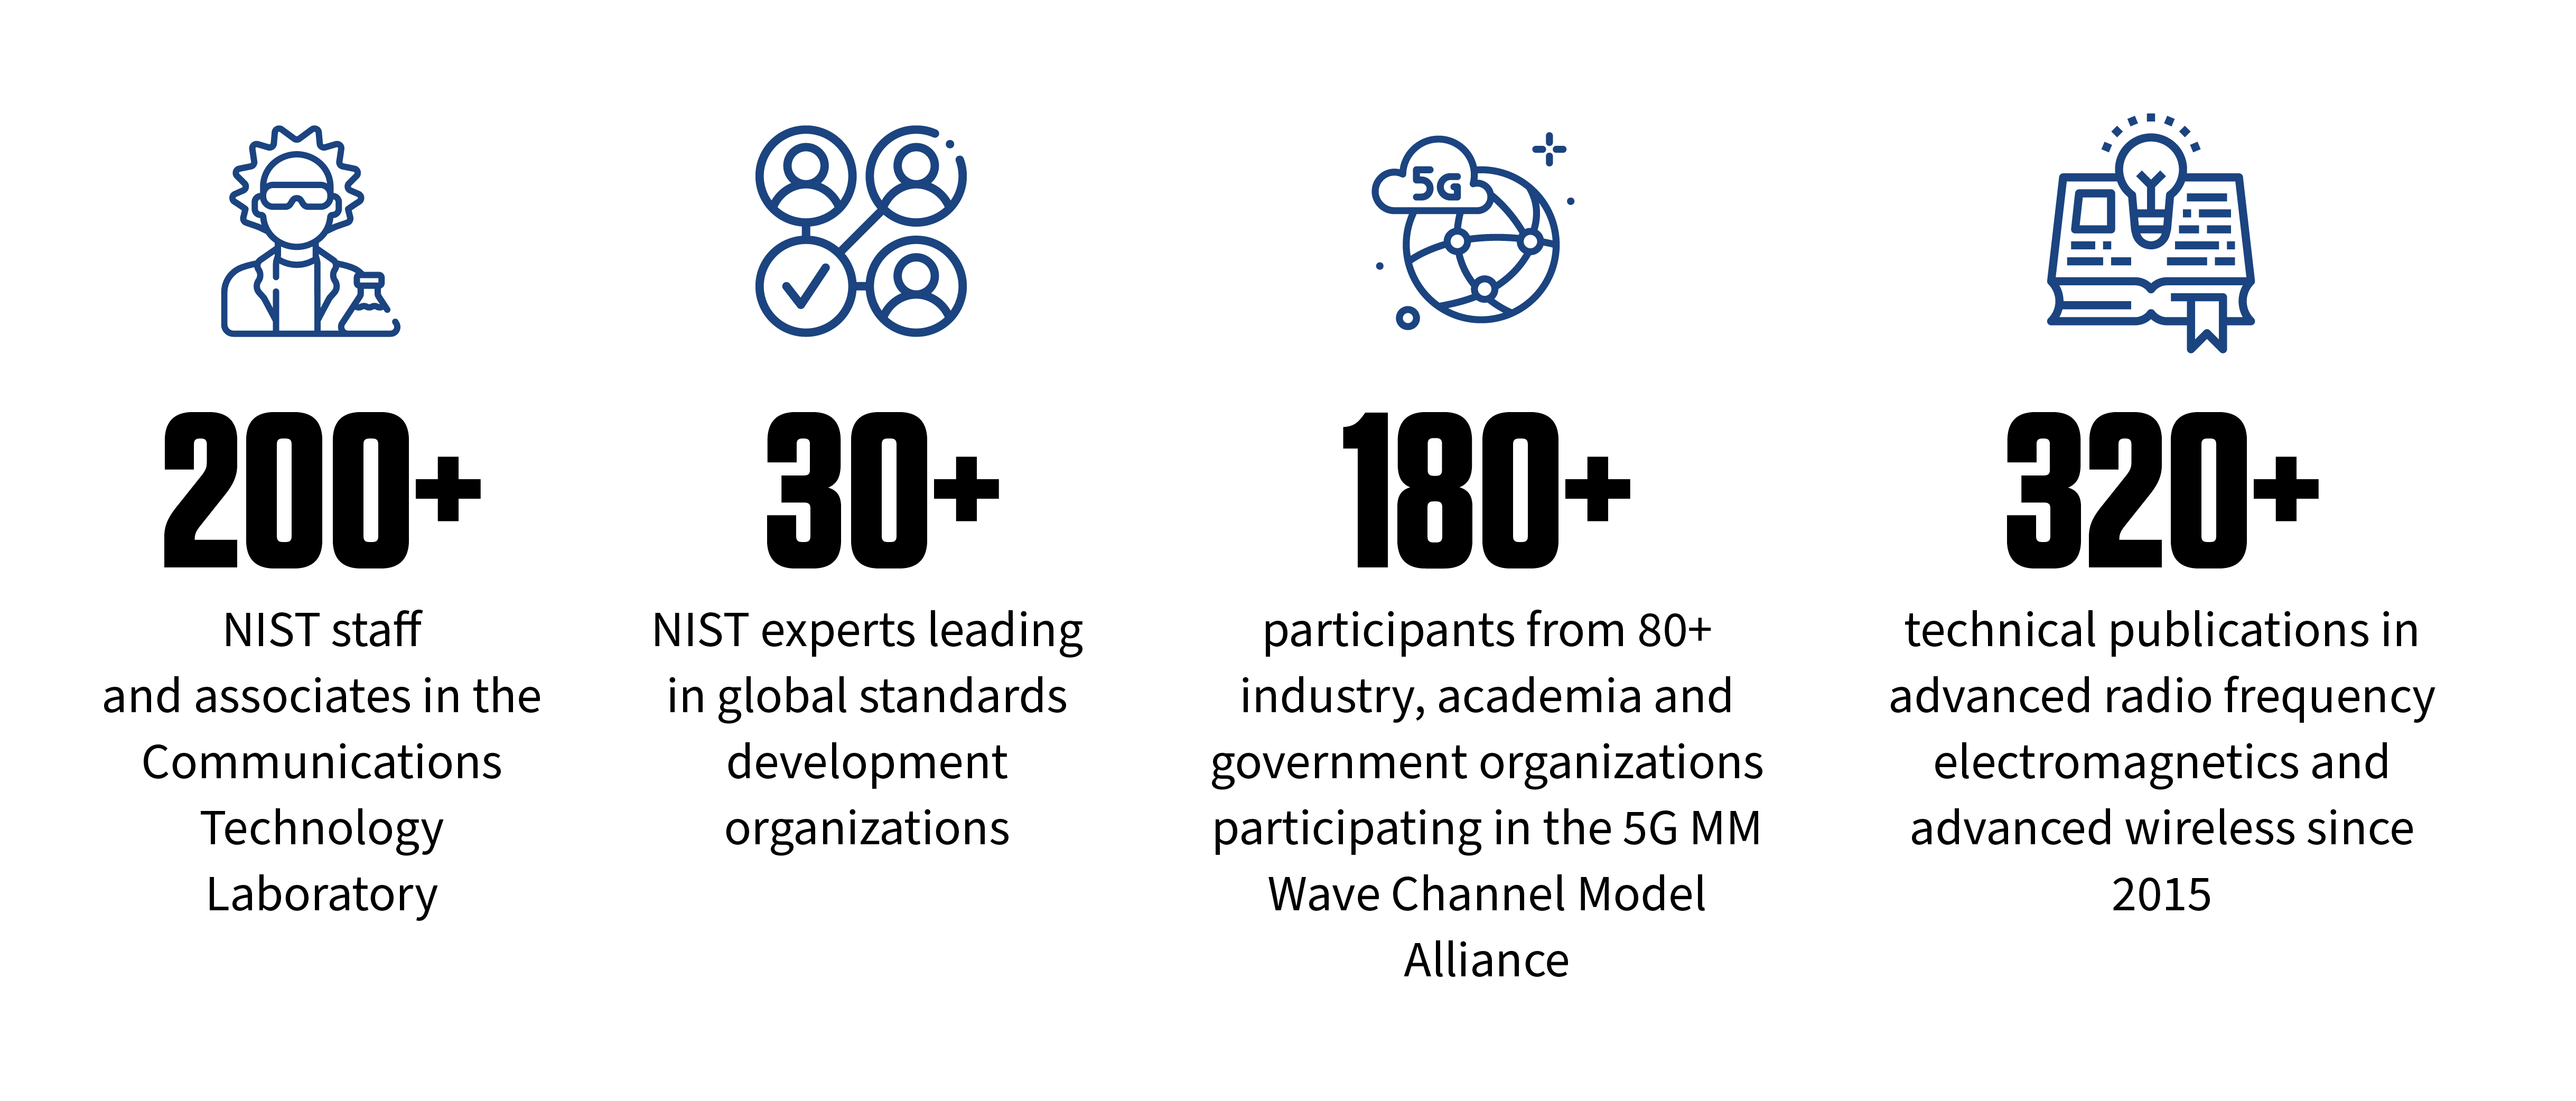 200+ NIST staff and associates in the Communications Technology Laboratory // 30+ NIST experts leading global standards development organizations // 180+ participants from 80+ industry, academia and government organizations led by NIST in the 5G mmWave Channel Model Alliance // 320+ technical publications in advanced radio frequency electromagnetics and advanced wireless since 2015